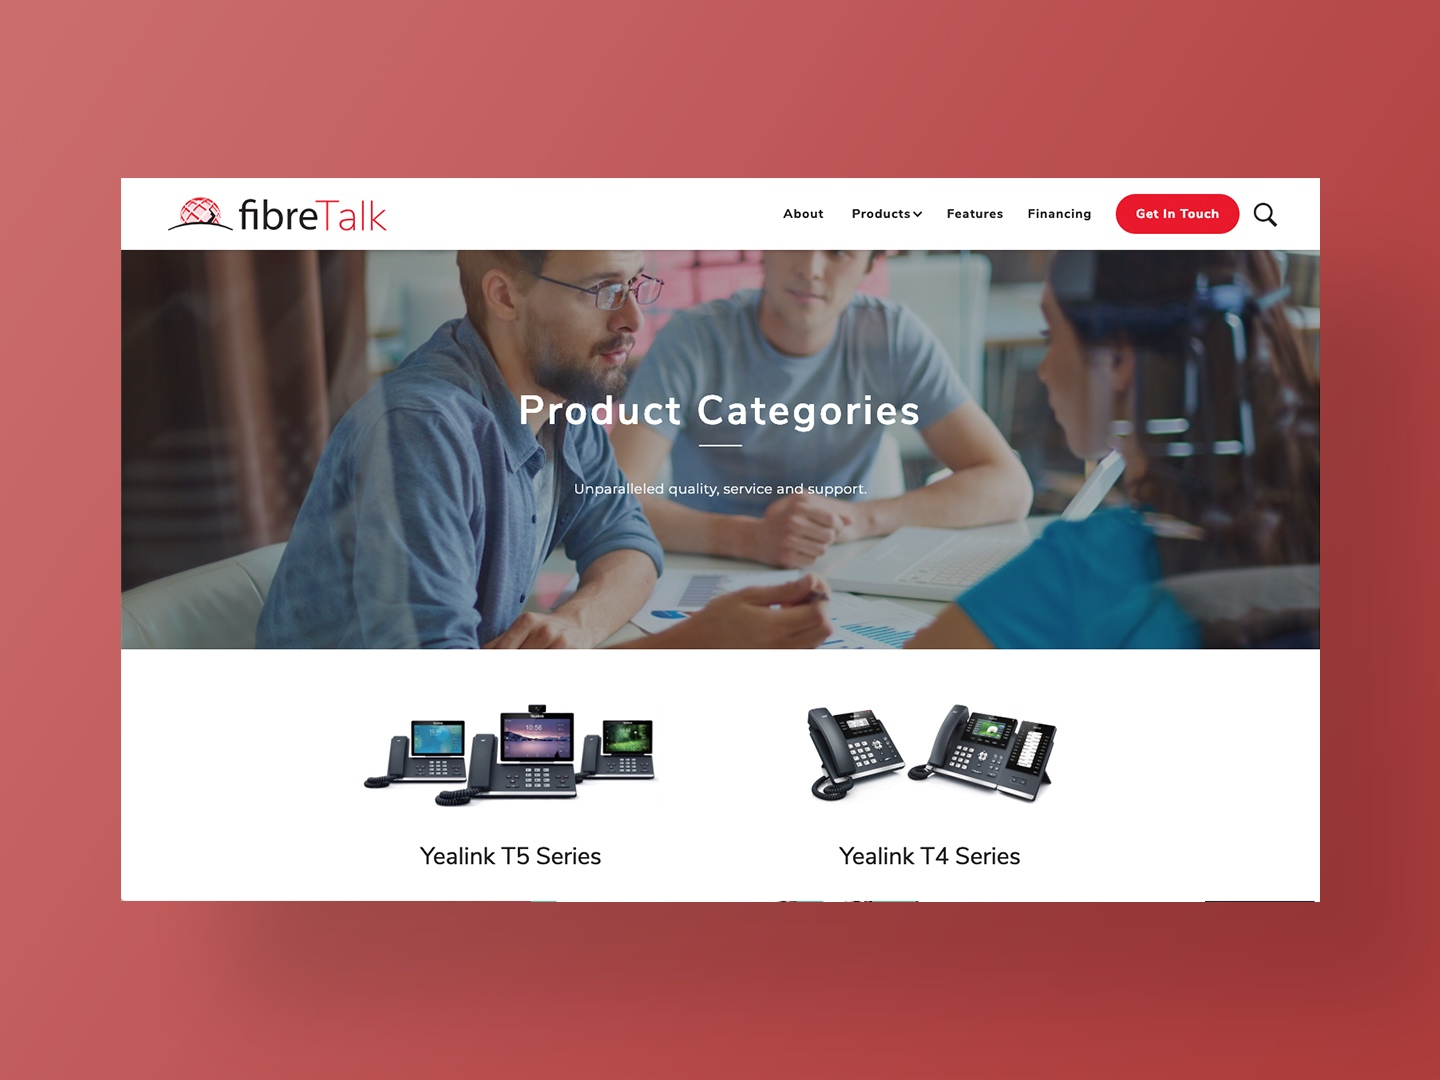 Fibretalks Website Designed by Neon Hive